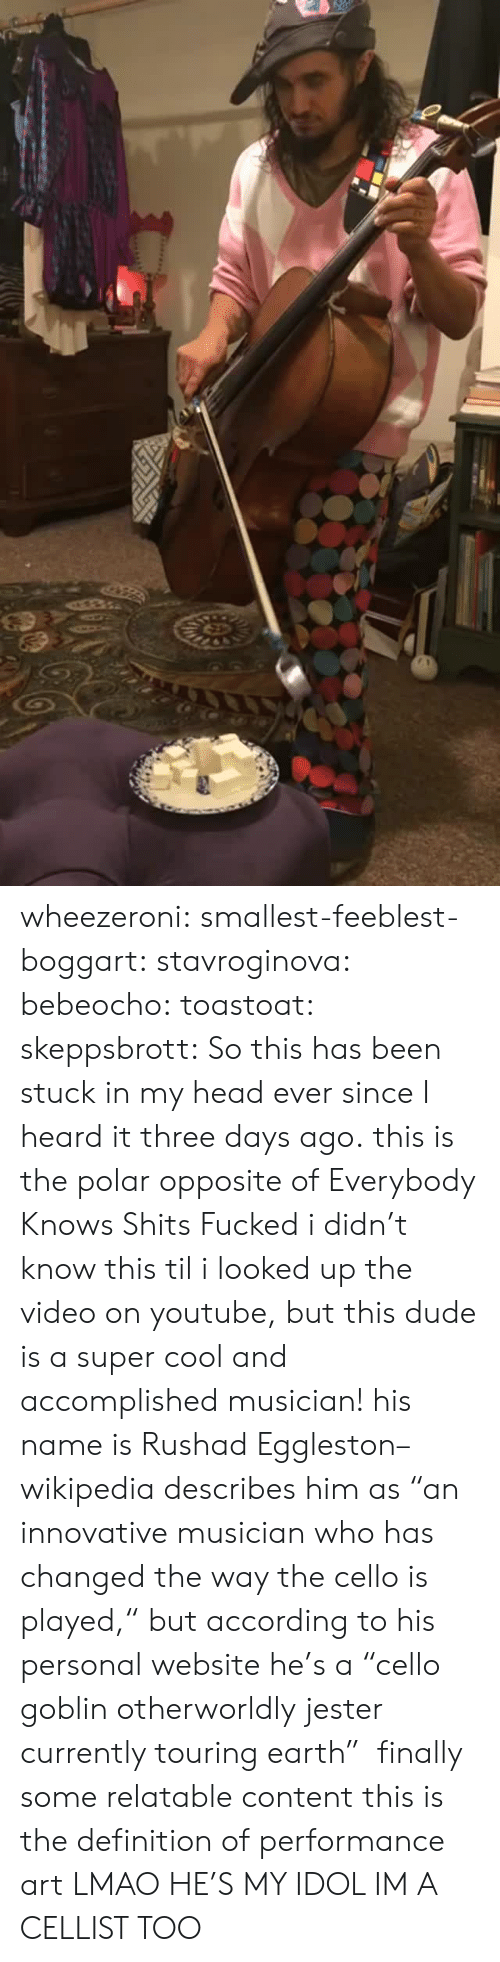 "innovative: wheezeroni:  smallest-feeblest-boggart:  stavroginova:  bebeocho:  toastoat:  skeppsbrott: So this has been stuck in my head ever since I heard it three days ago. this is the polar opposite of Everybody Knows Shits Fucked  i didn't know this til i looked up the video on youtube, but this dude is a super cool and accomplished musician! his name is Rushad Eggleston–wikipedia describes him as ""an innovative musician who has changed the way the cello is played,"" but according to his personal website he's a ""cello goblin  otherworldly jester currently touring earth""    finally some relatable content  this is the definition of performance art  LMAO HE'S MY IDOL IM A CELLIST TOO"